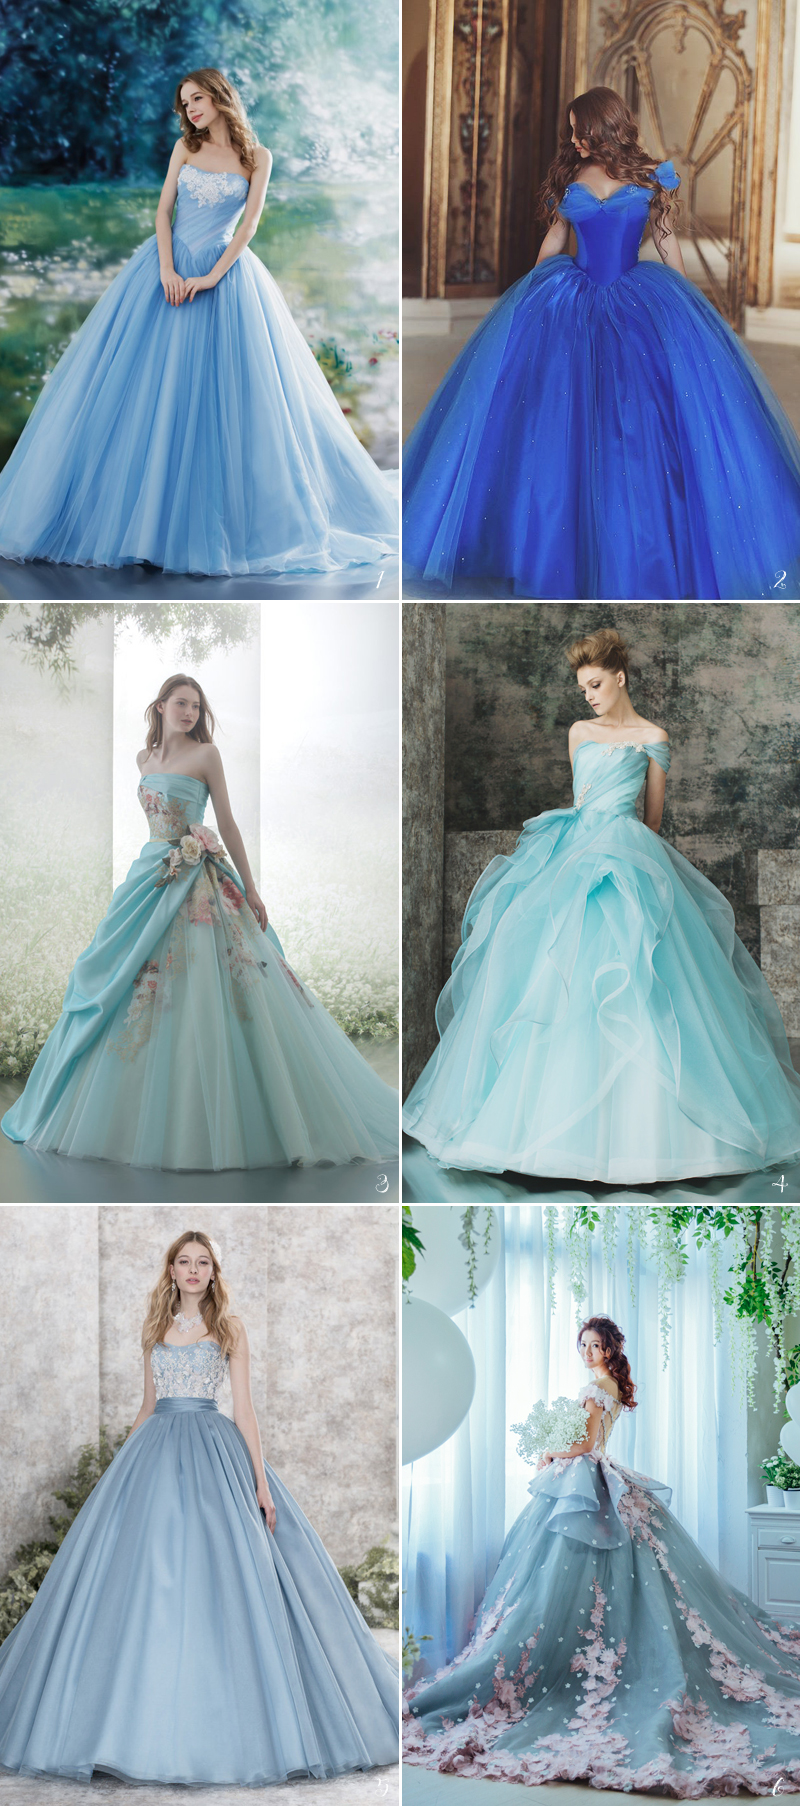 Cinderella Wedding Dresses 2017 : Fairy tale wedding dresses for the disney princess